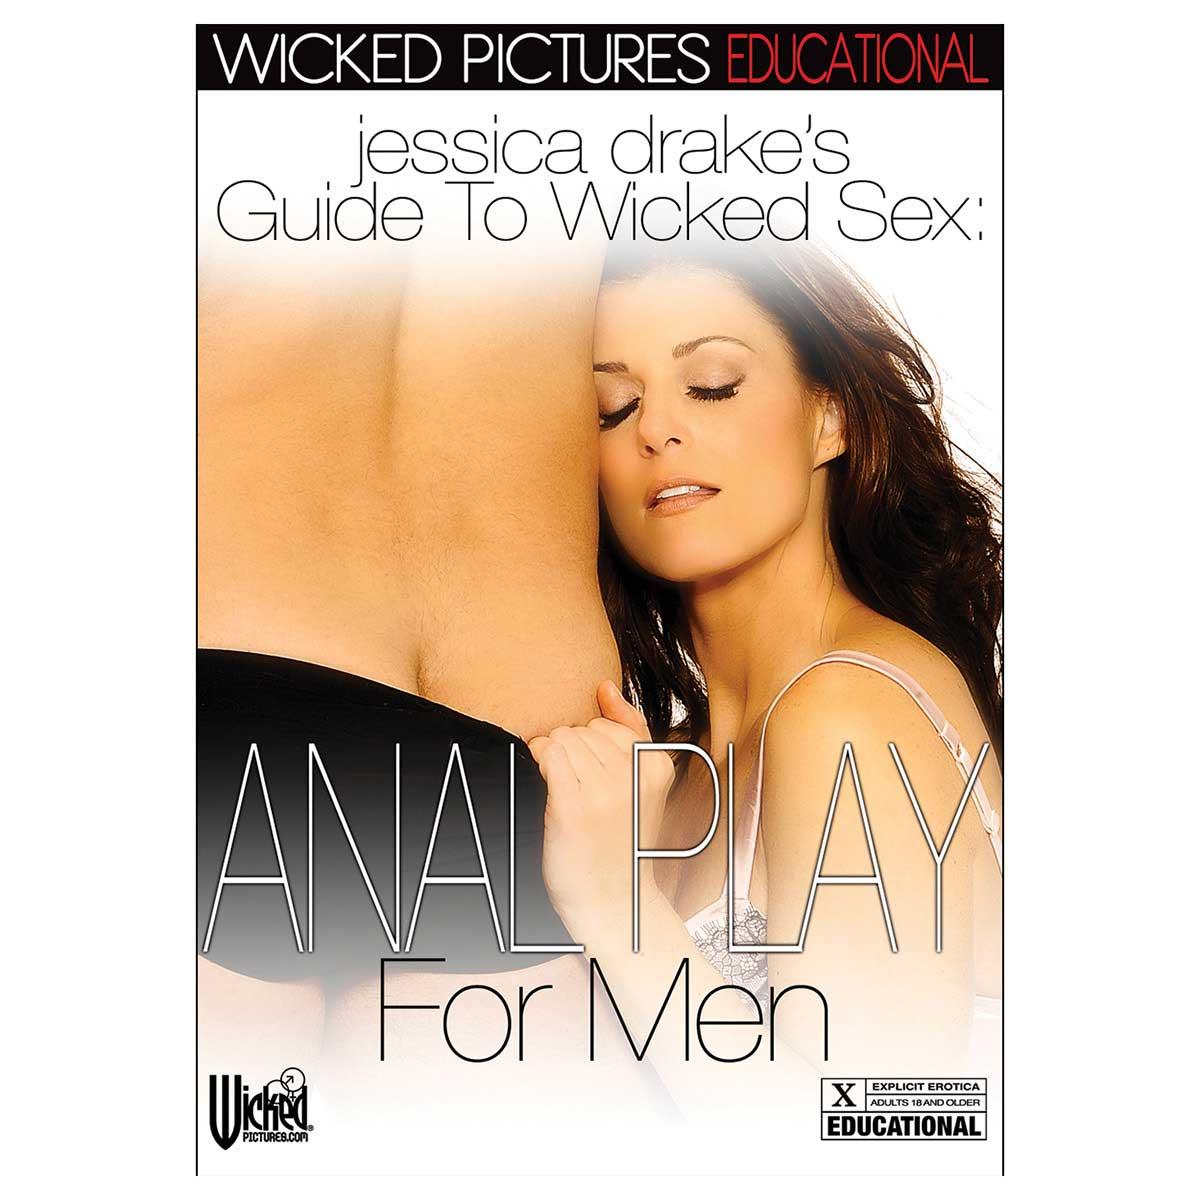 Jessica Drake's Guide to Wicked Sex: Anal Play for Men